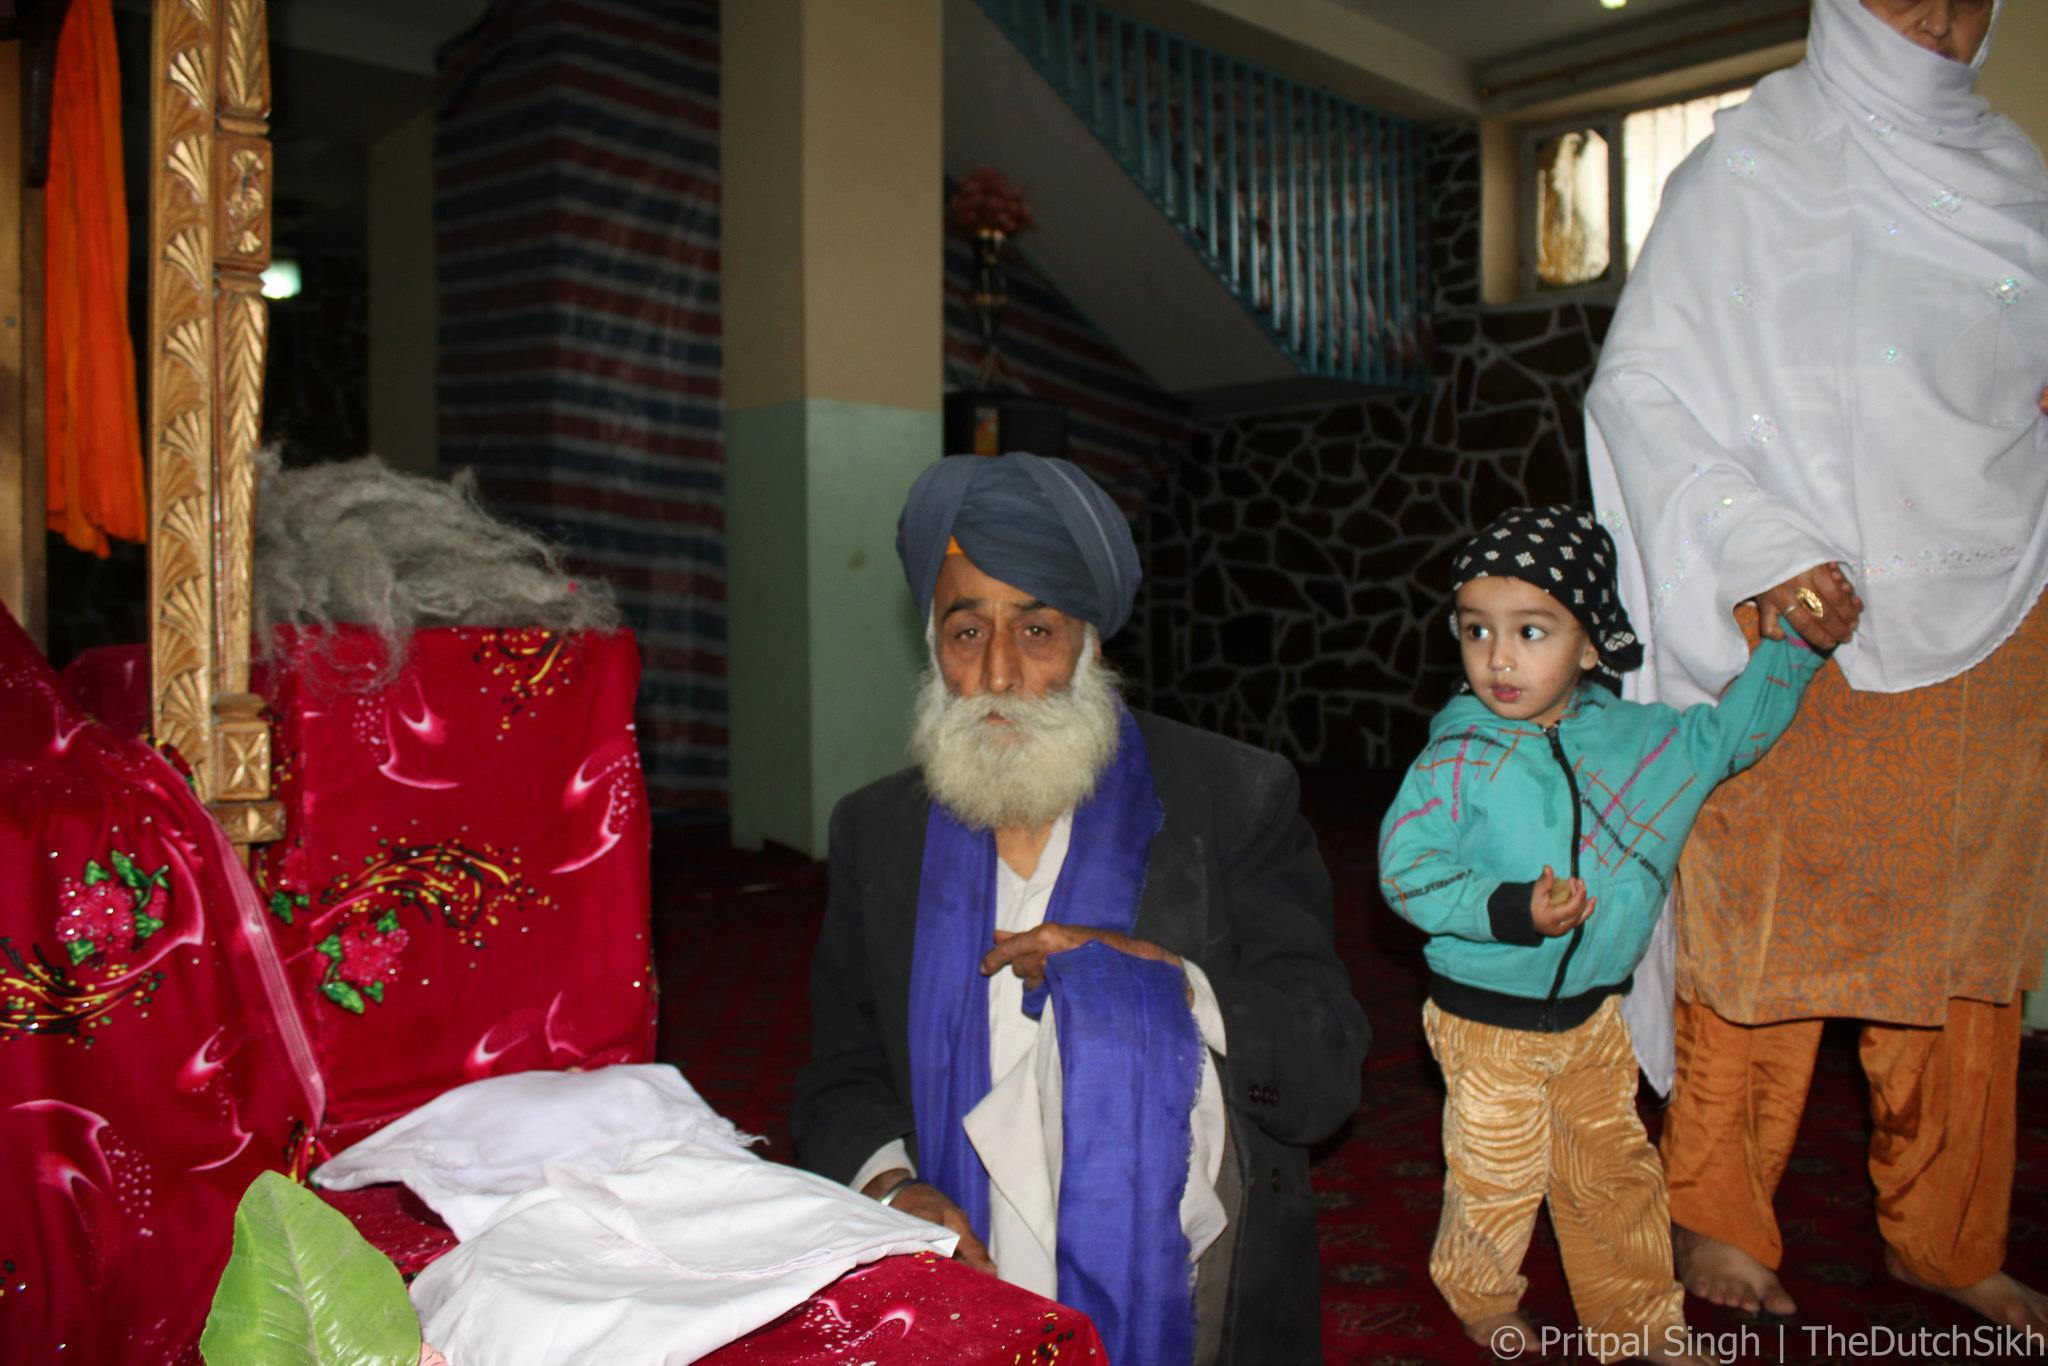 Avtar Singh, one of the victims of the May 25th attack, pictured in Shorbazar, 2012. Photograph by Pritpal Singh